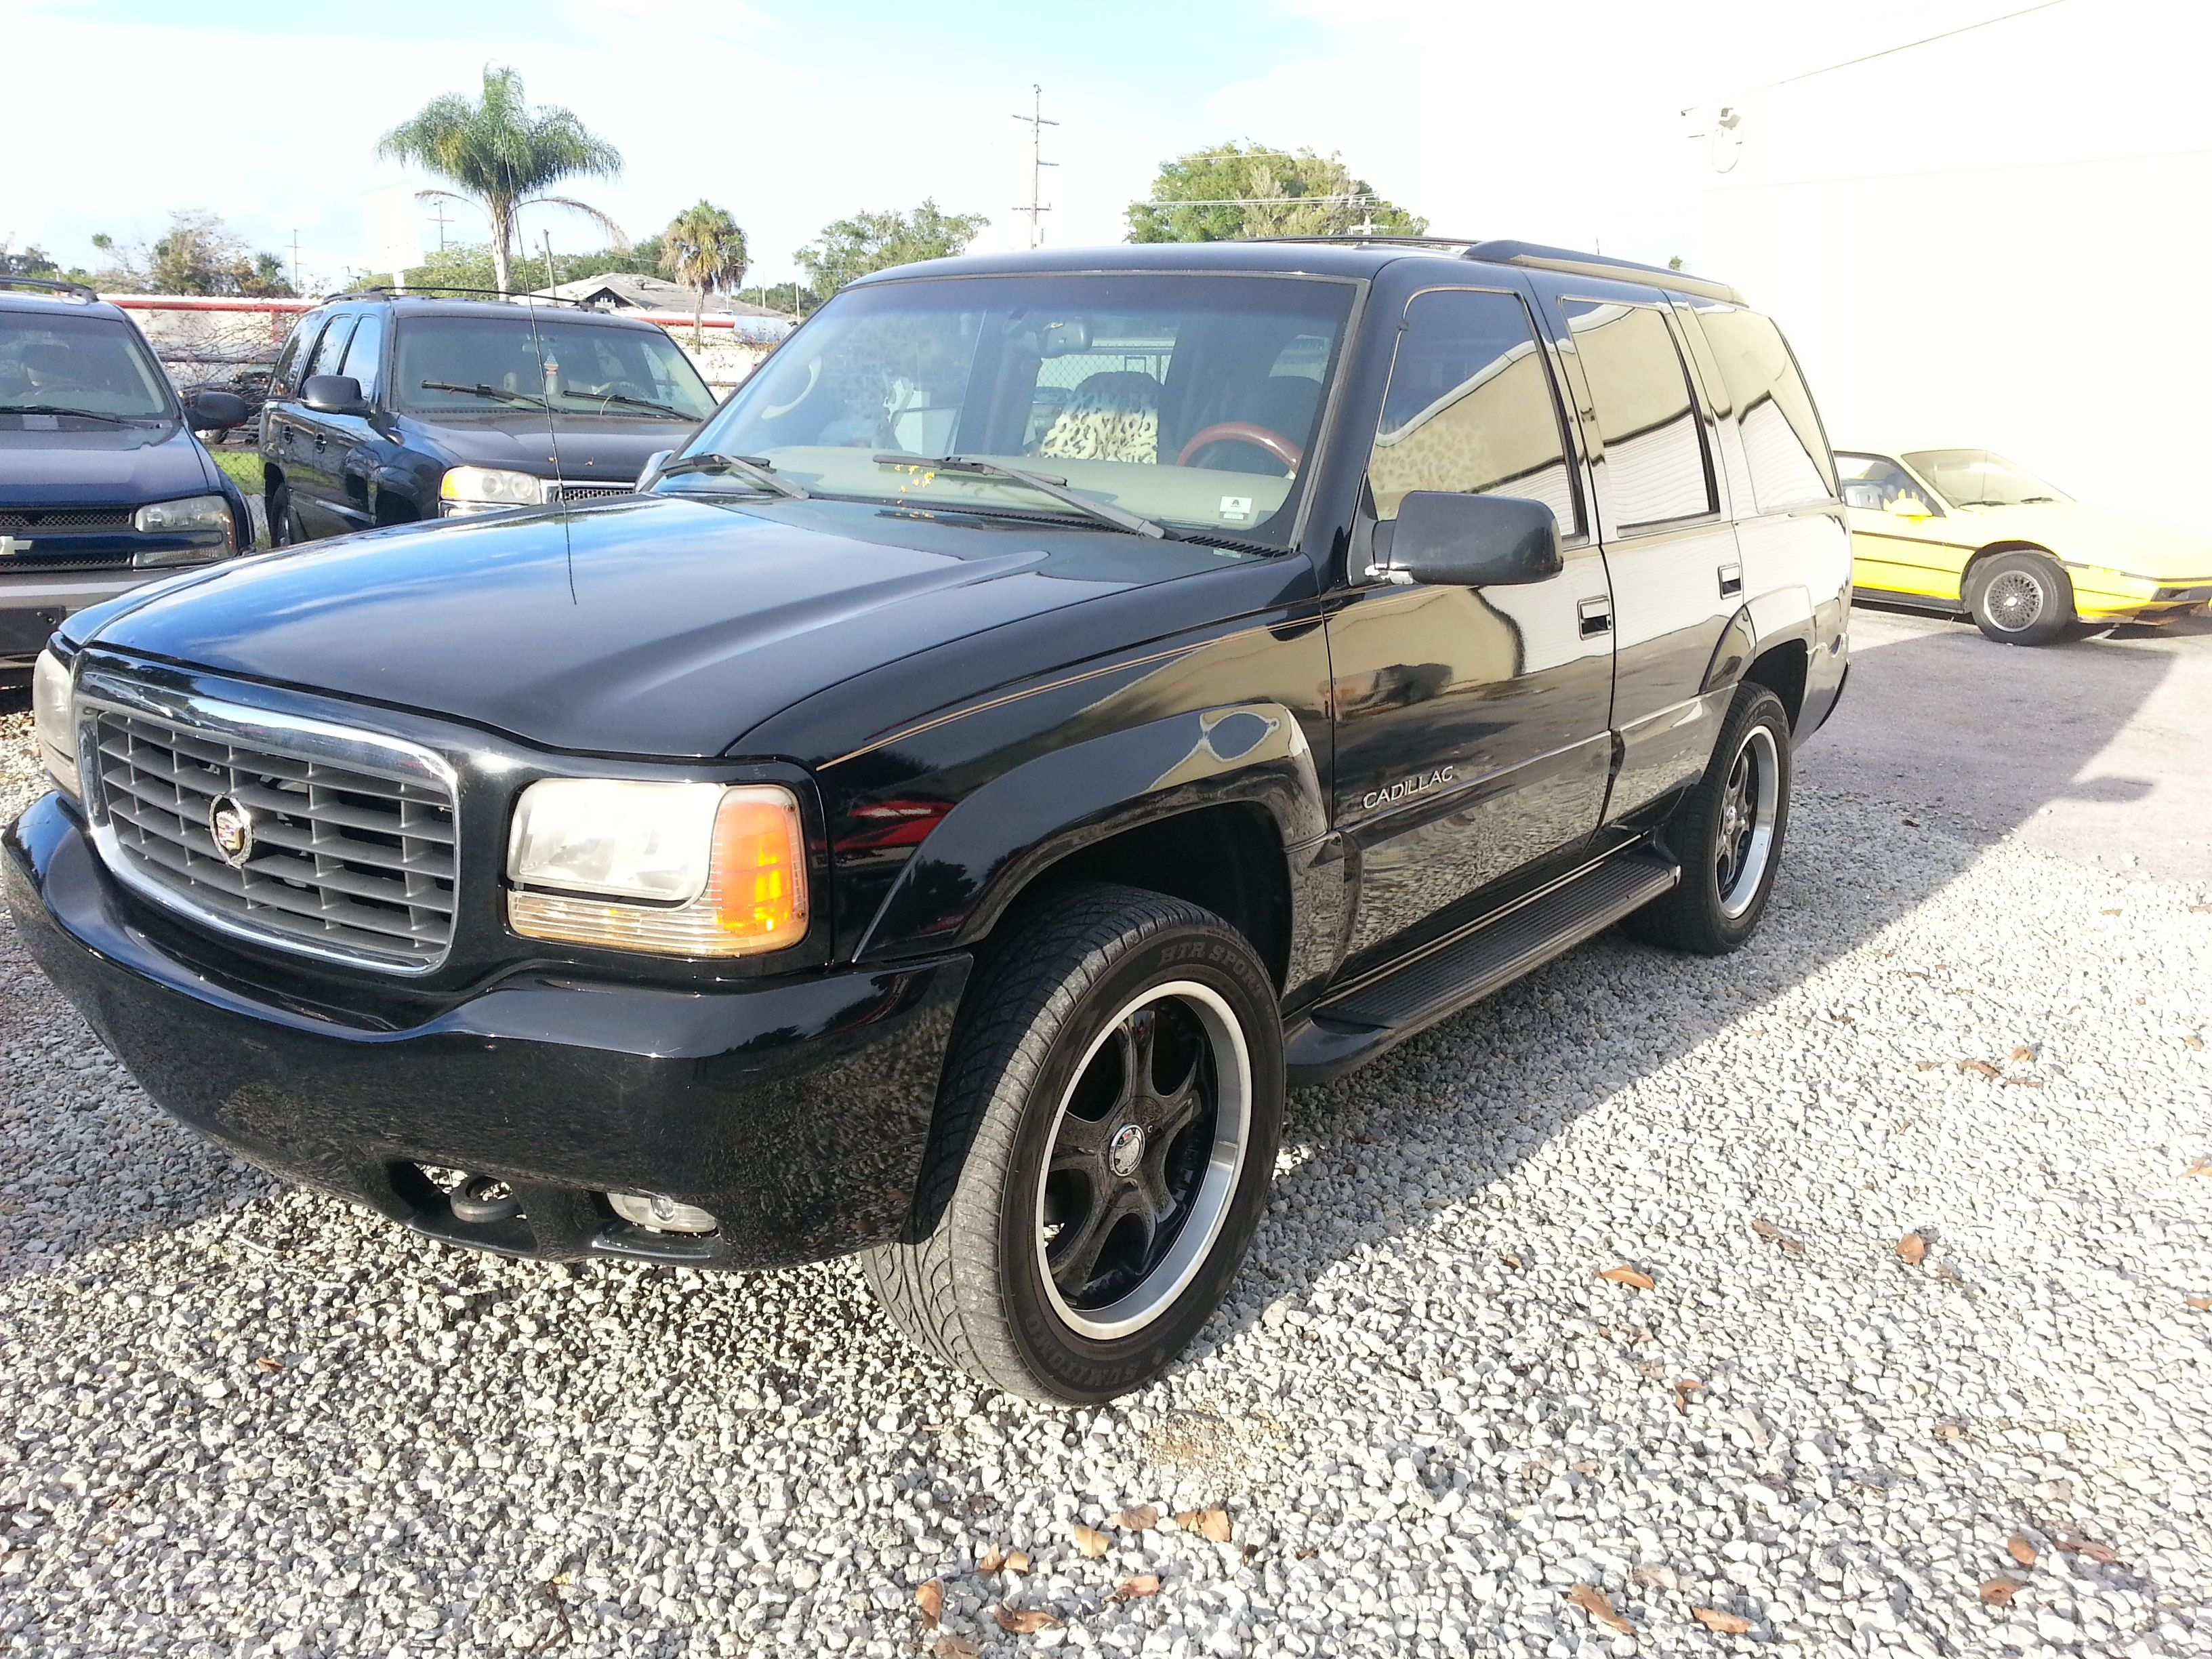 1999 Cadillac Escalade Gold Edition Has 20 Black Chrome Wheels And After Market Exhaust Only 130k Miles Great Price Of 6500